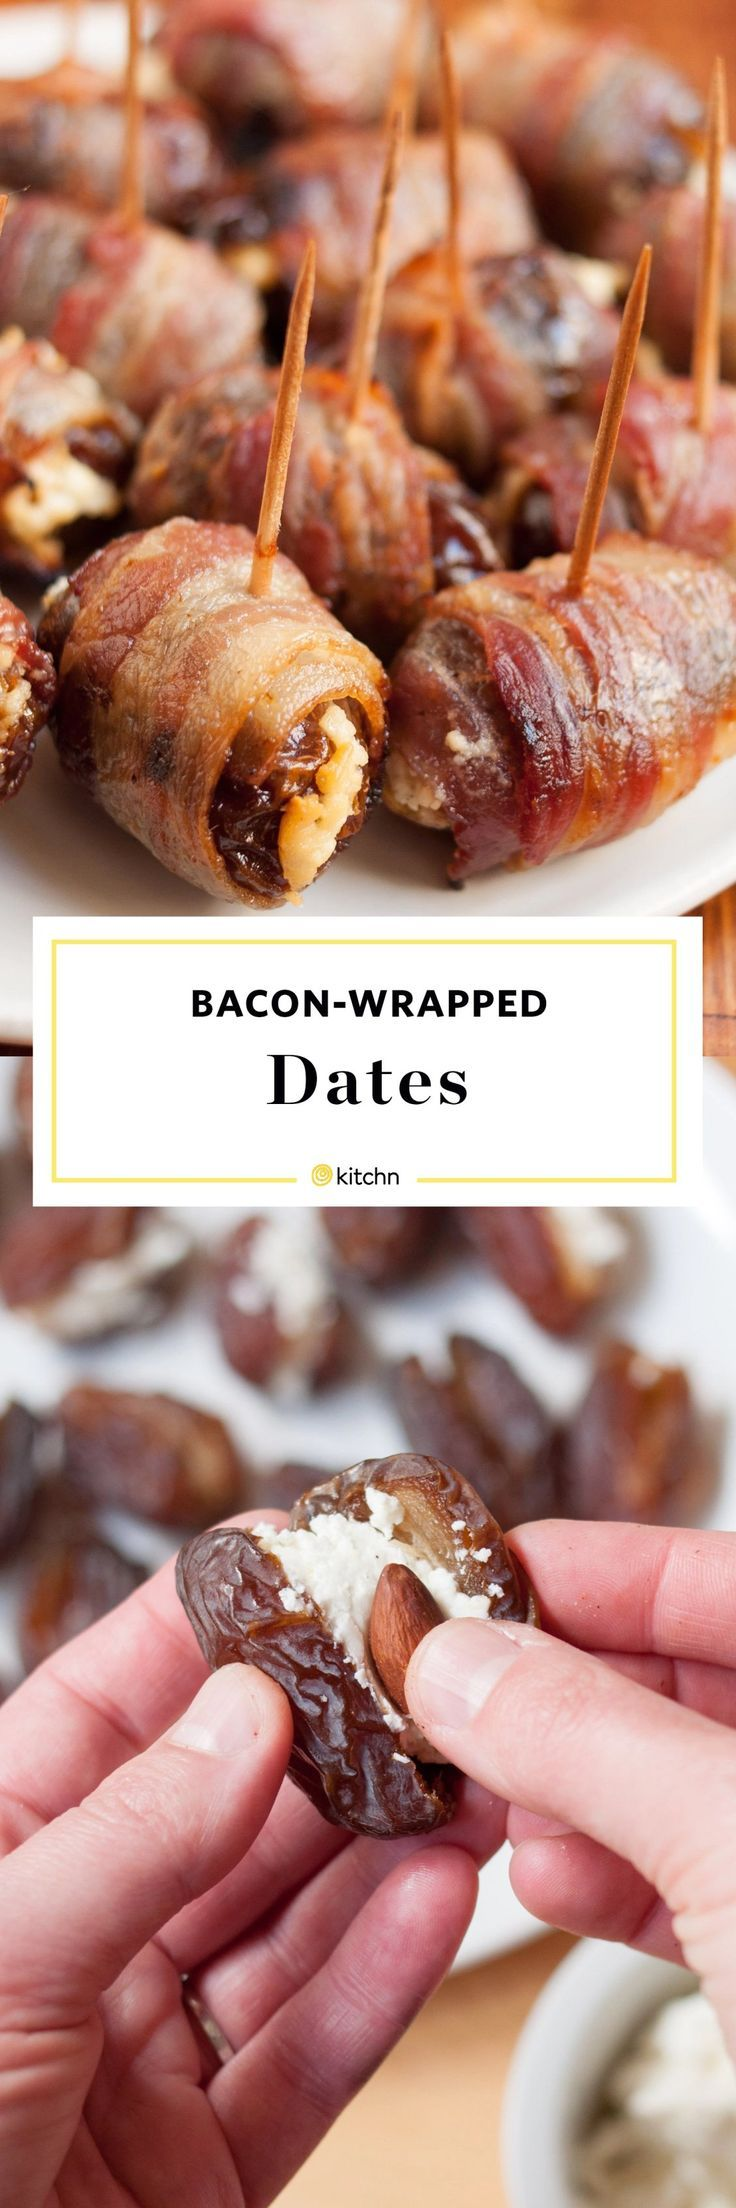 Bacon wrapped dates recipe. Need ideas and recipes for easy small bites or appetizers for Thanksgiving or Christmas parties? Entertaining for the holidays is easy with crowd pleasers like this for your party! Families will love these. It's like meat and dips all in one! Serve hot or cold. Stuffed with goat or blue cheese and an almond.